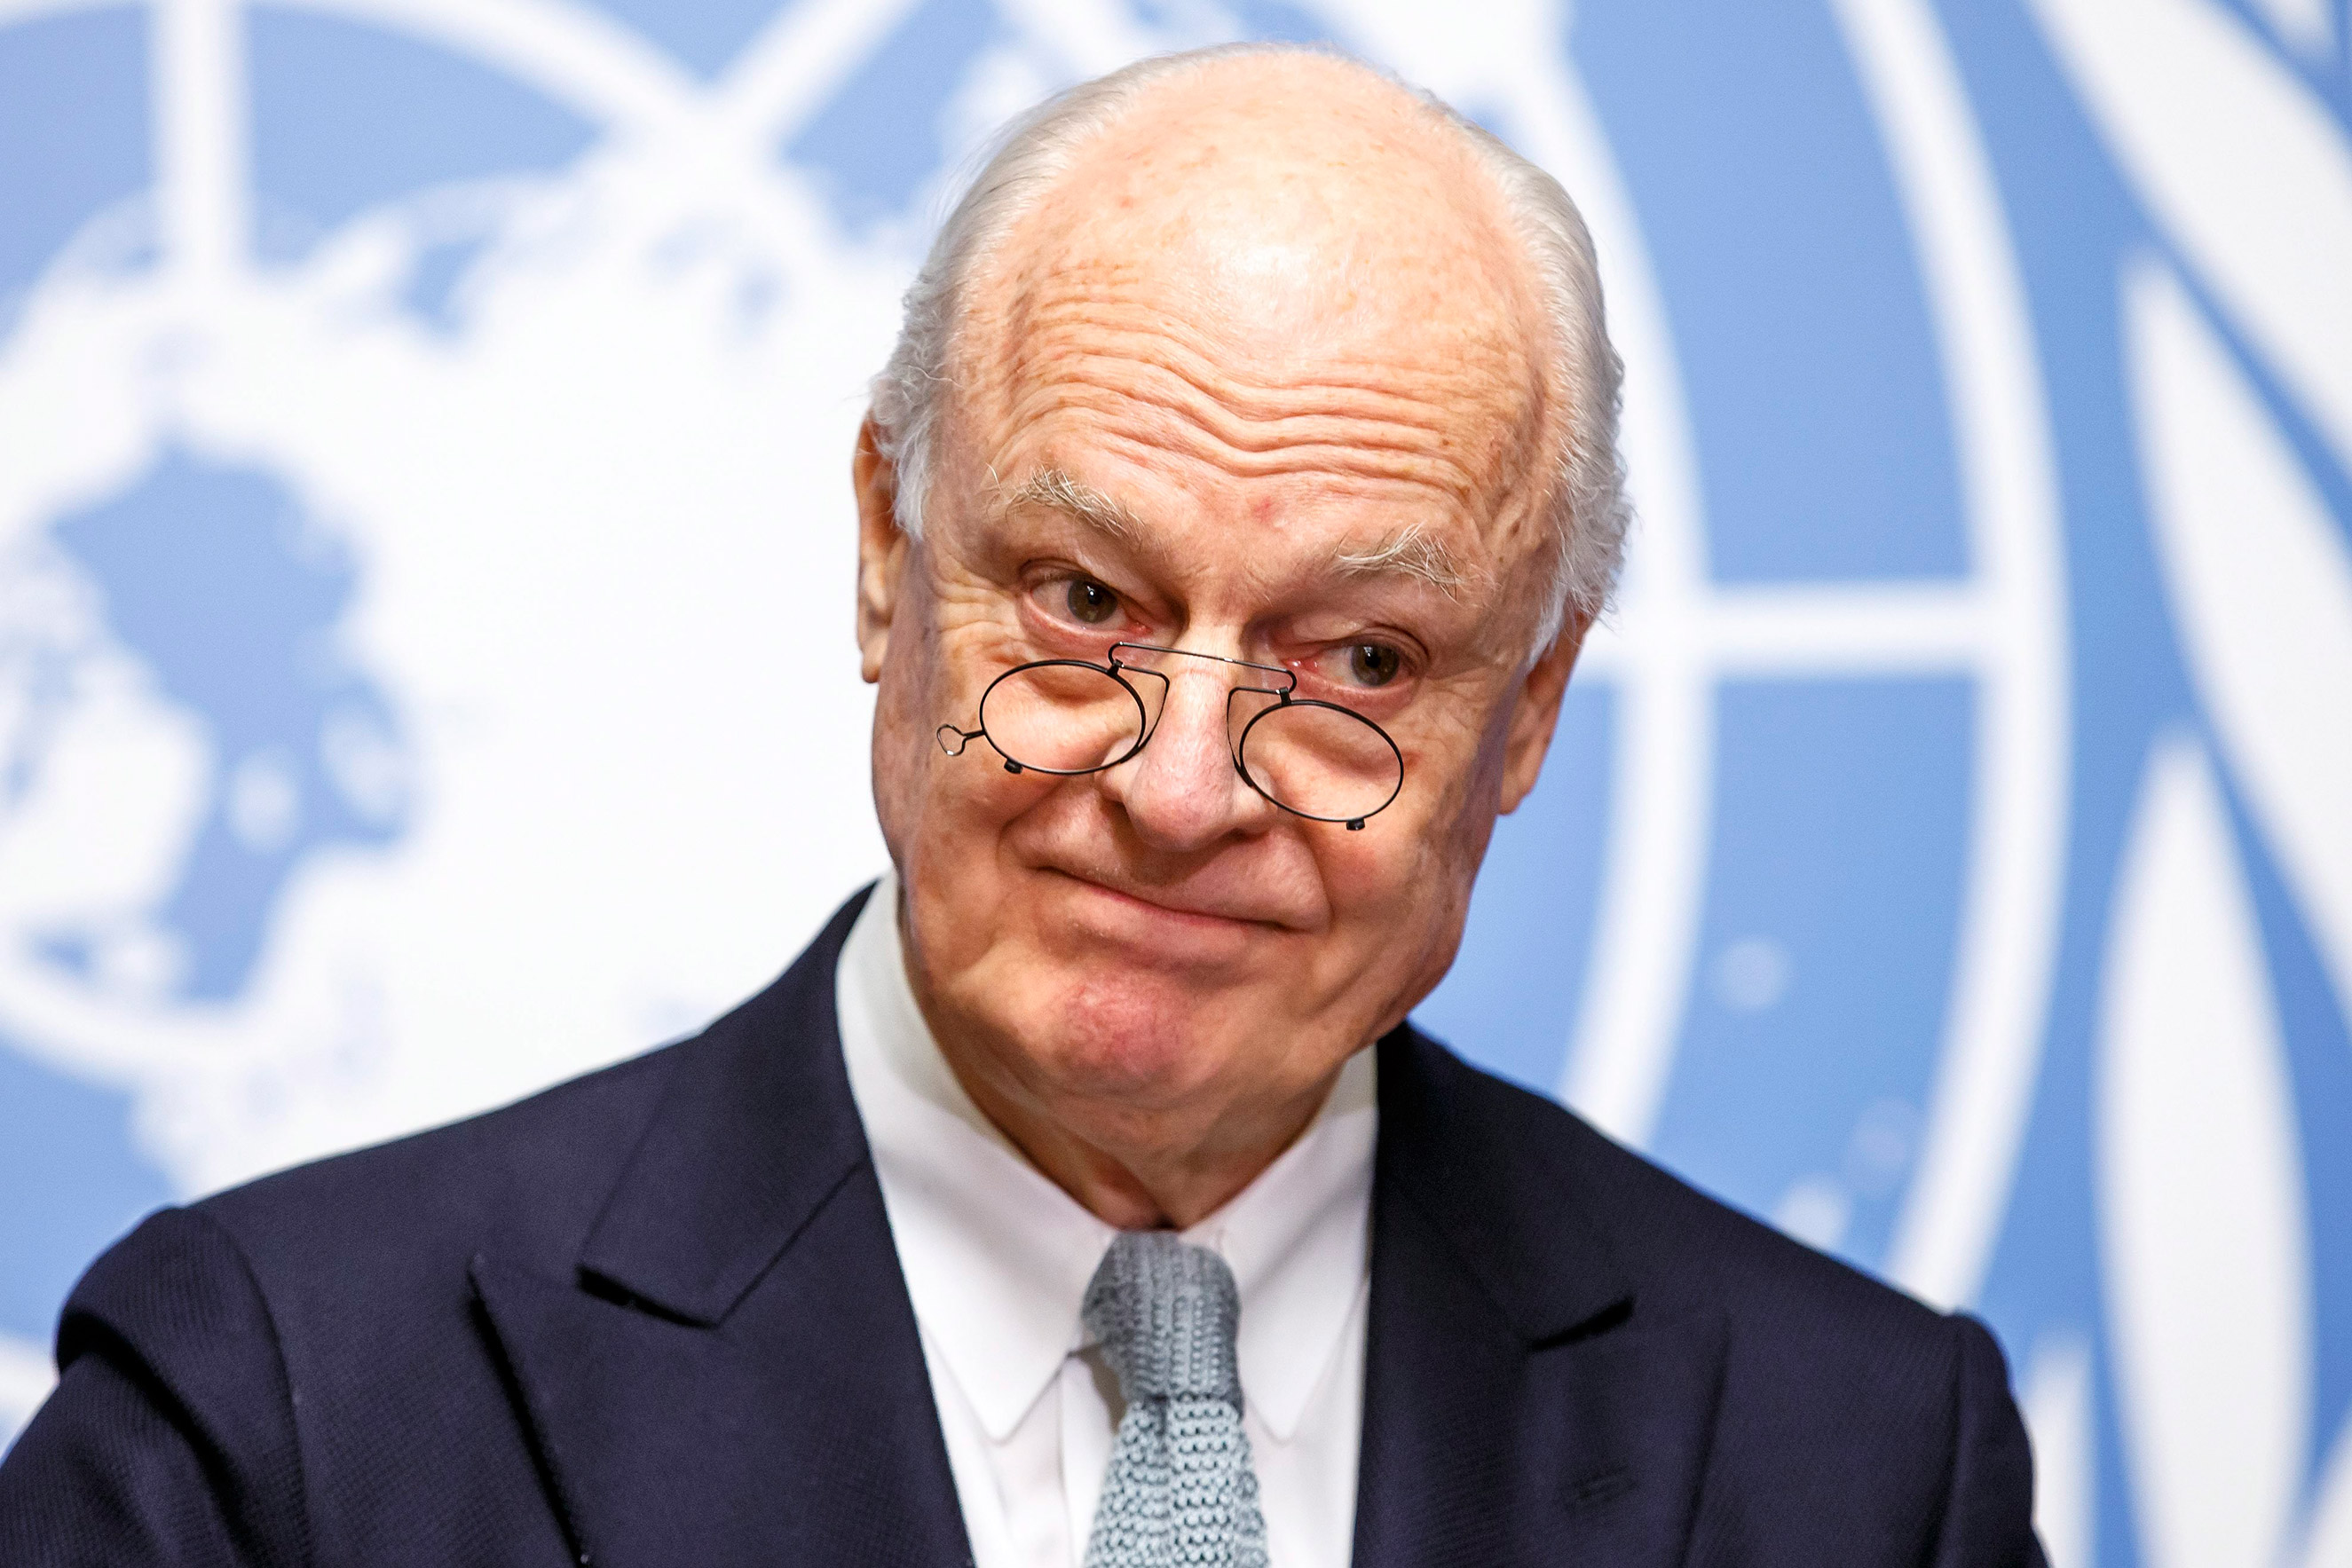 United Nations Special Envoy of the Secretary-General for Syria Staffan de Mistura informs the media on the upcoming talks during a press conference in Geneva, Switzerland, Jan. 25, 2016.